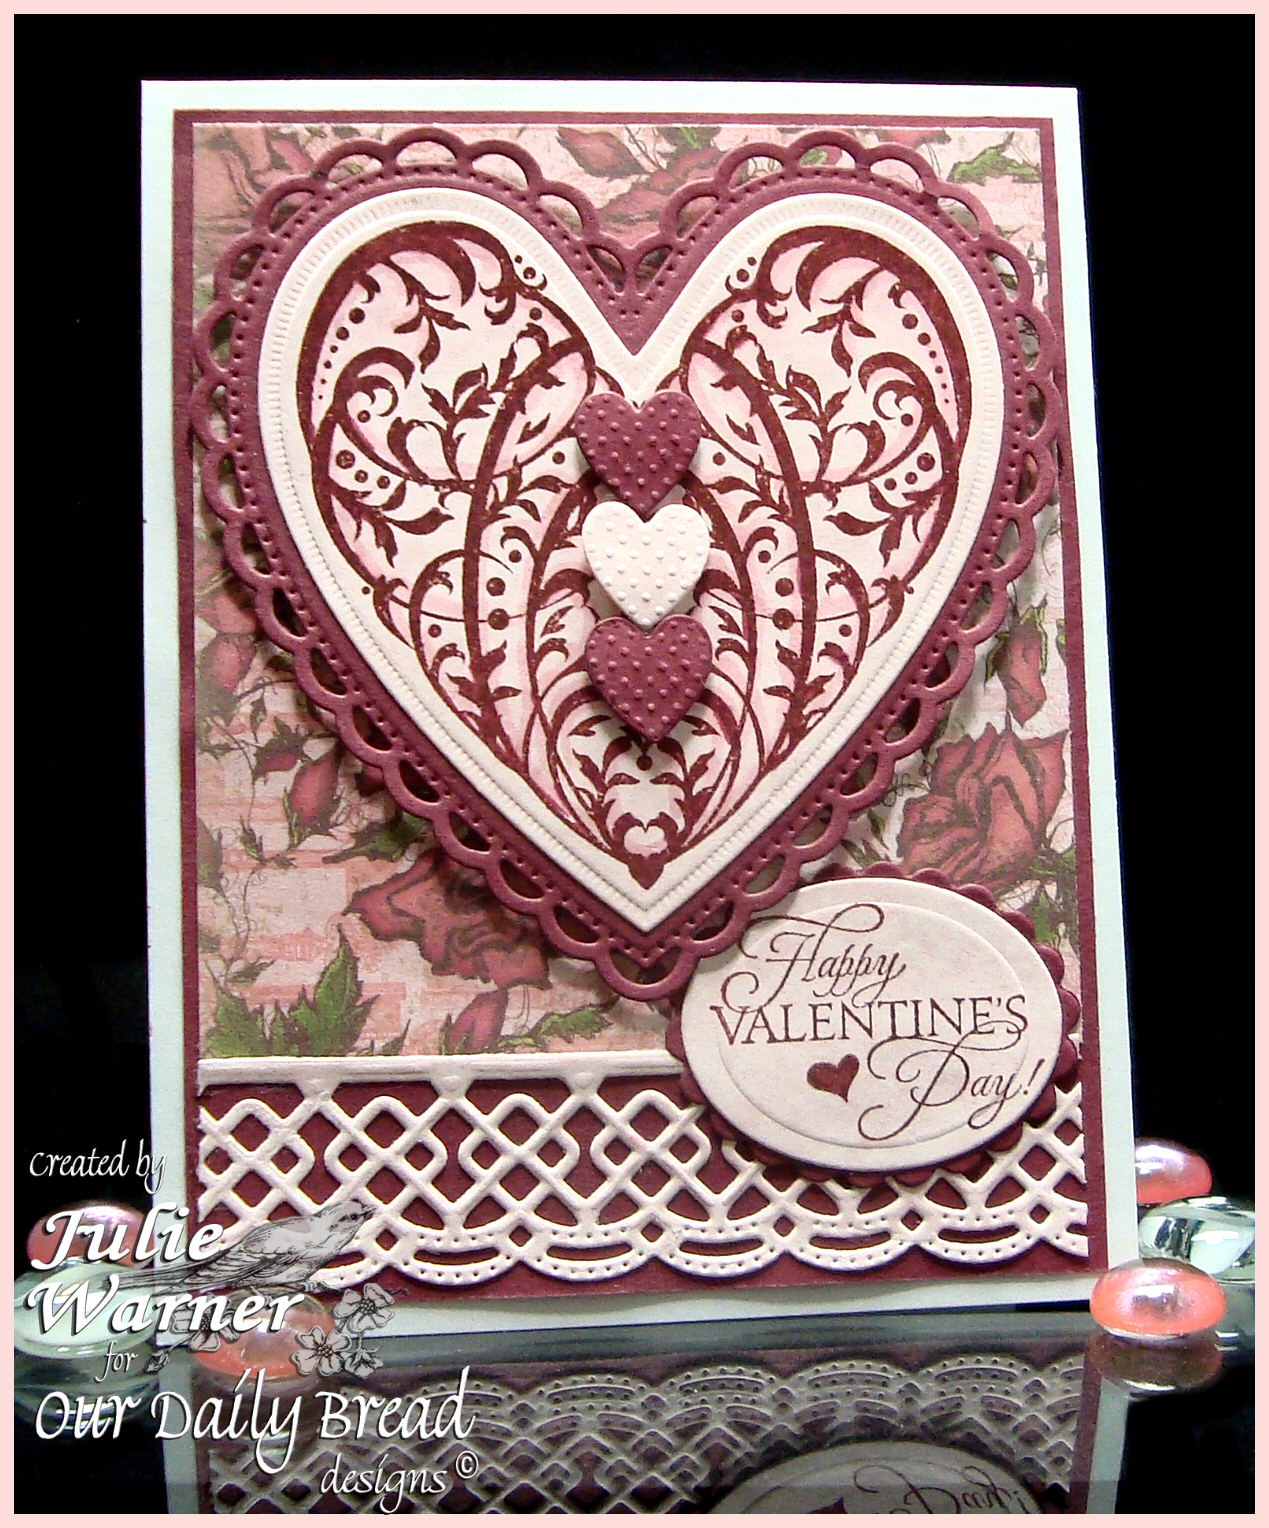 Stamps - Our Daily Bread Designs Bless Your Heart, ODBD Custom Beautiful Borders Dies, ODBD Custom Quatrefoil Die, ODBD Custom Ornate Hearts Die, ODBD Heart and Soul Paper Collection